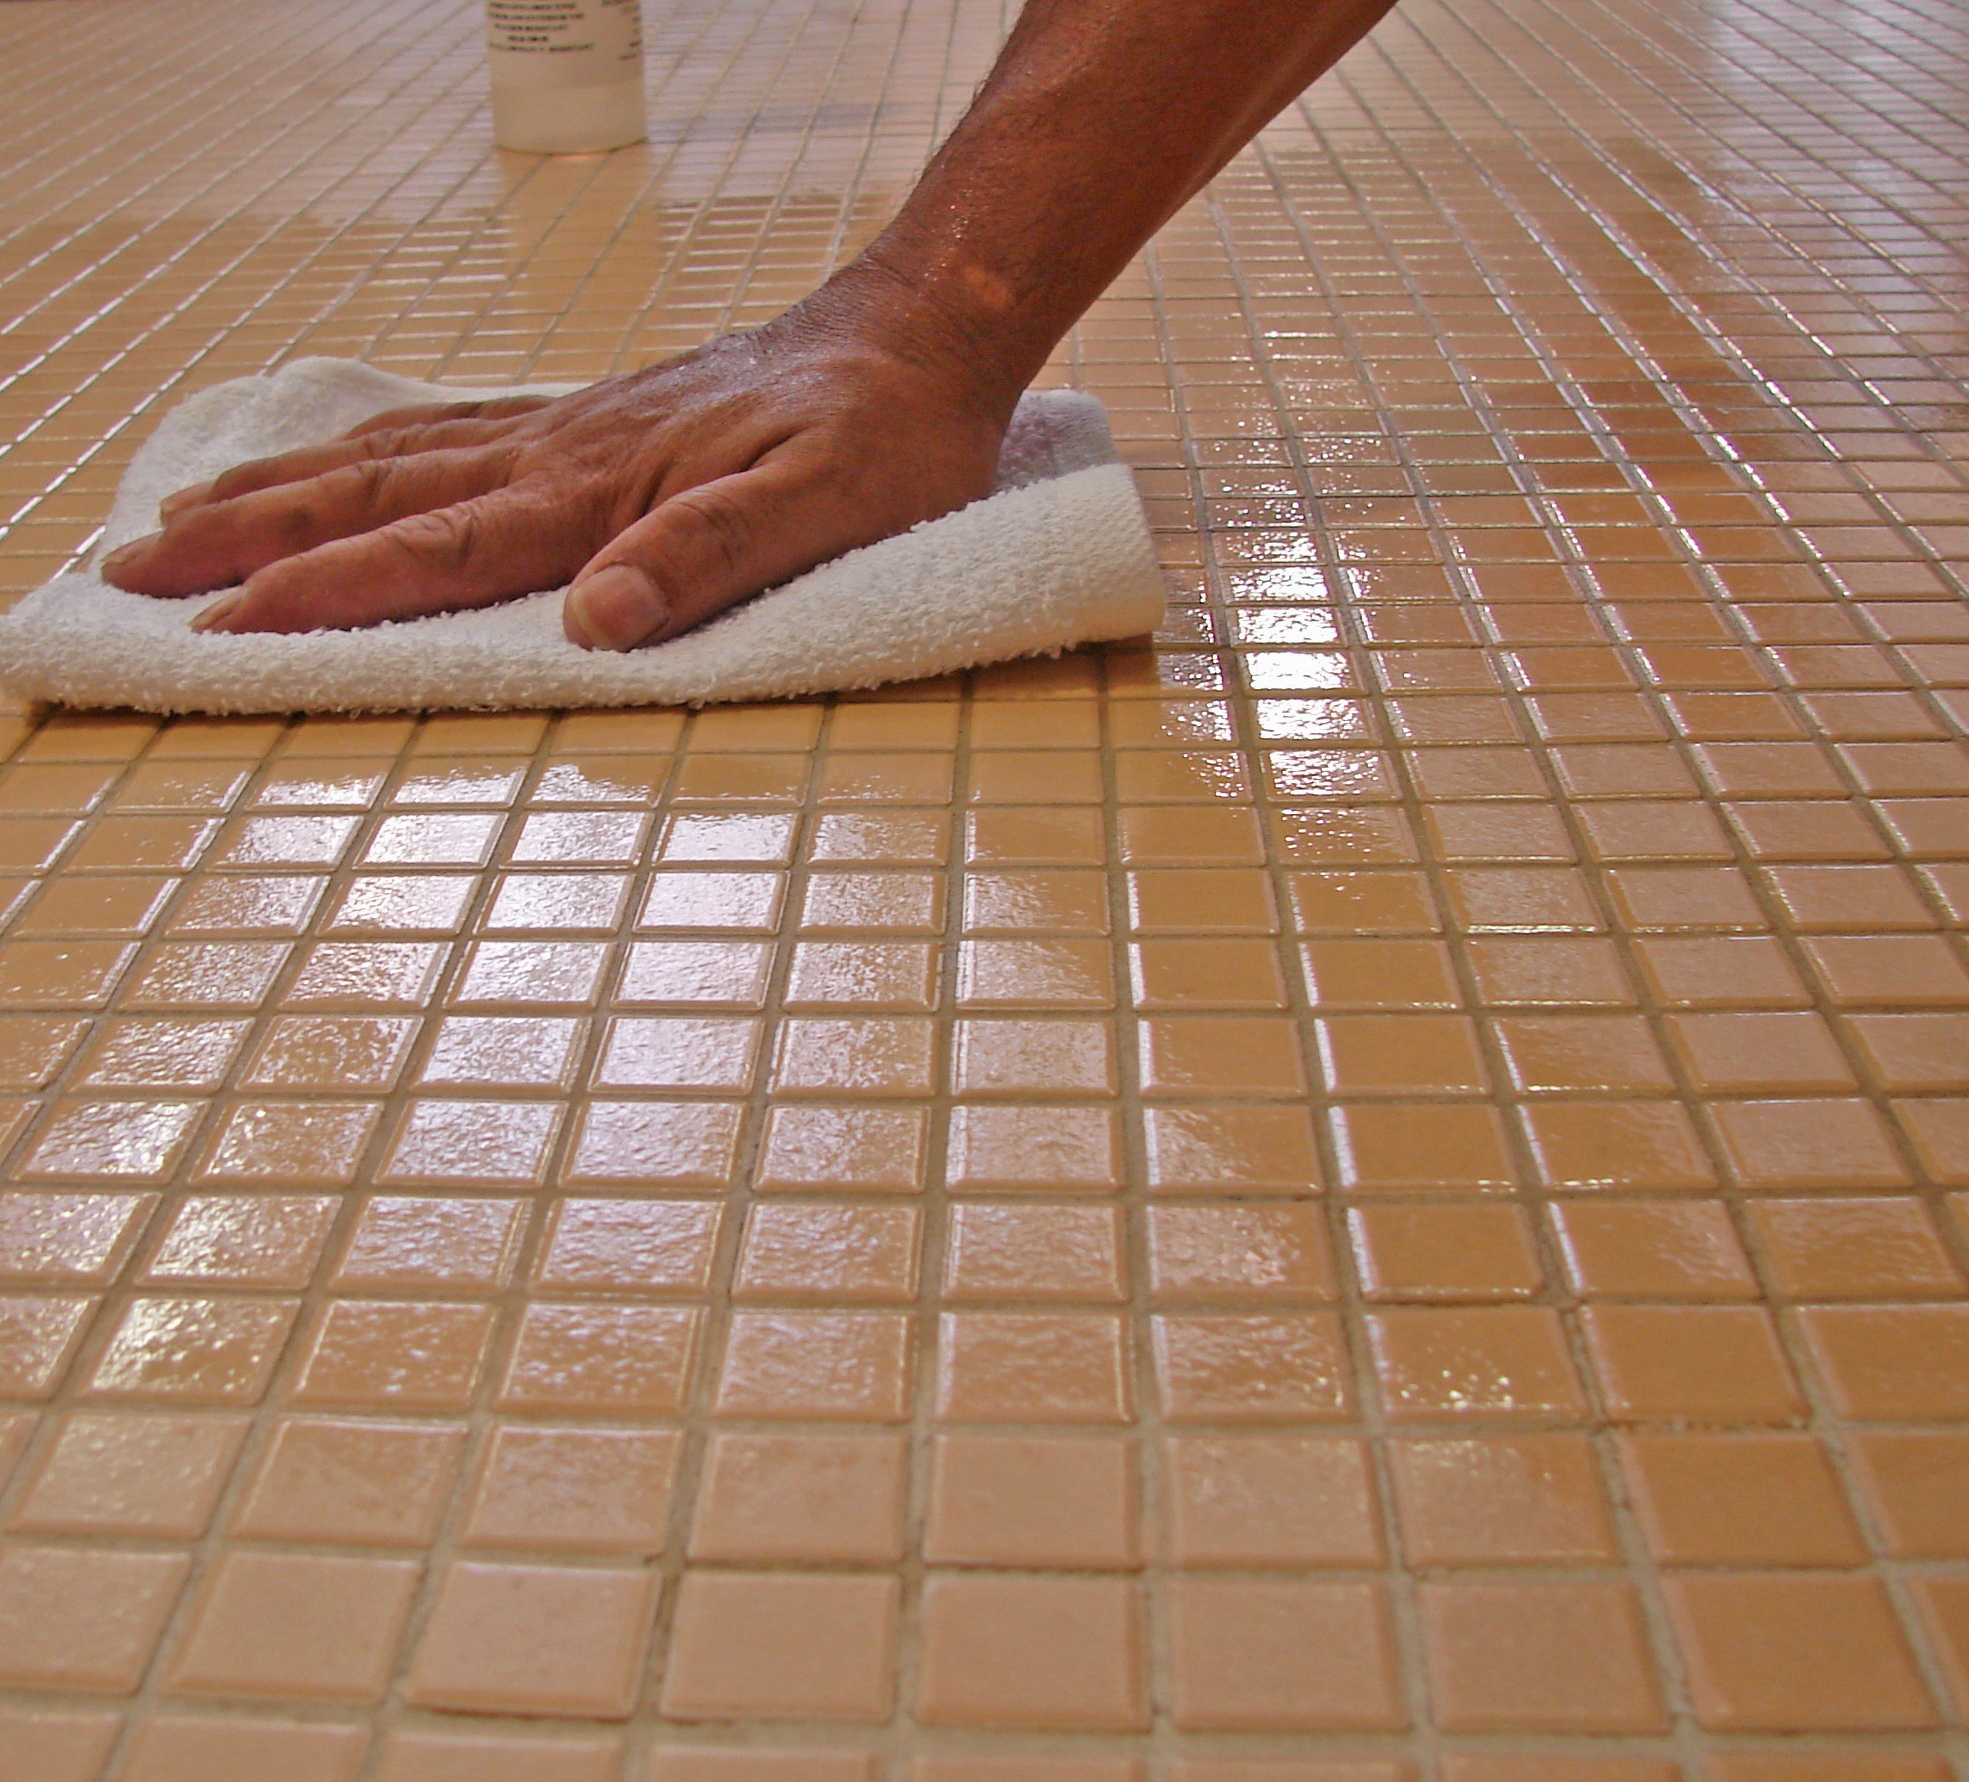 How to polish ceramic tiles - Ideas by Mr Right